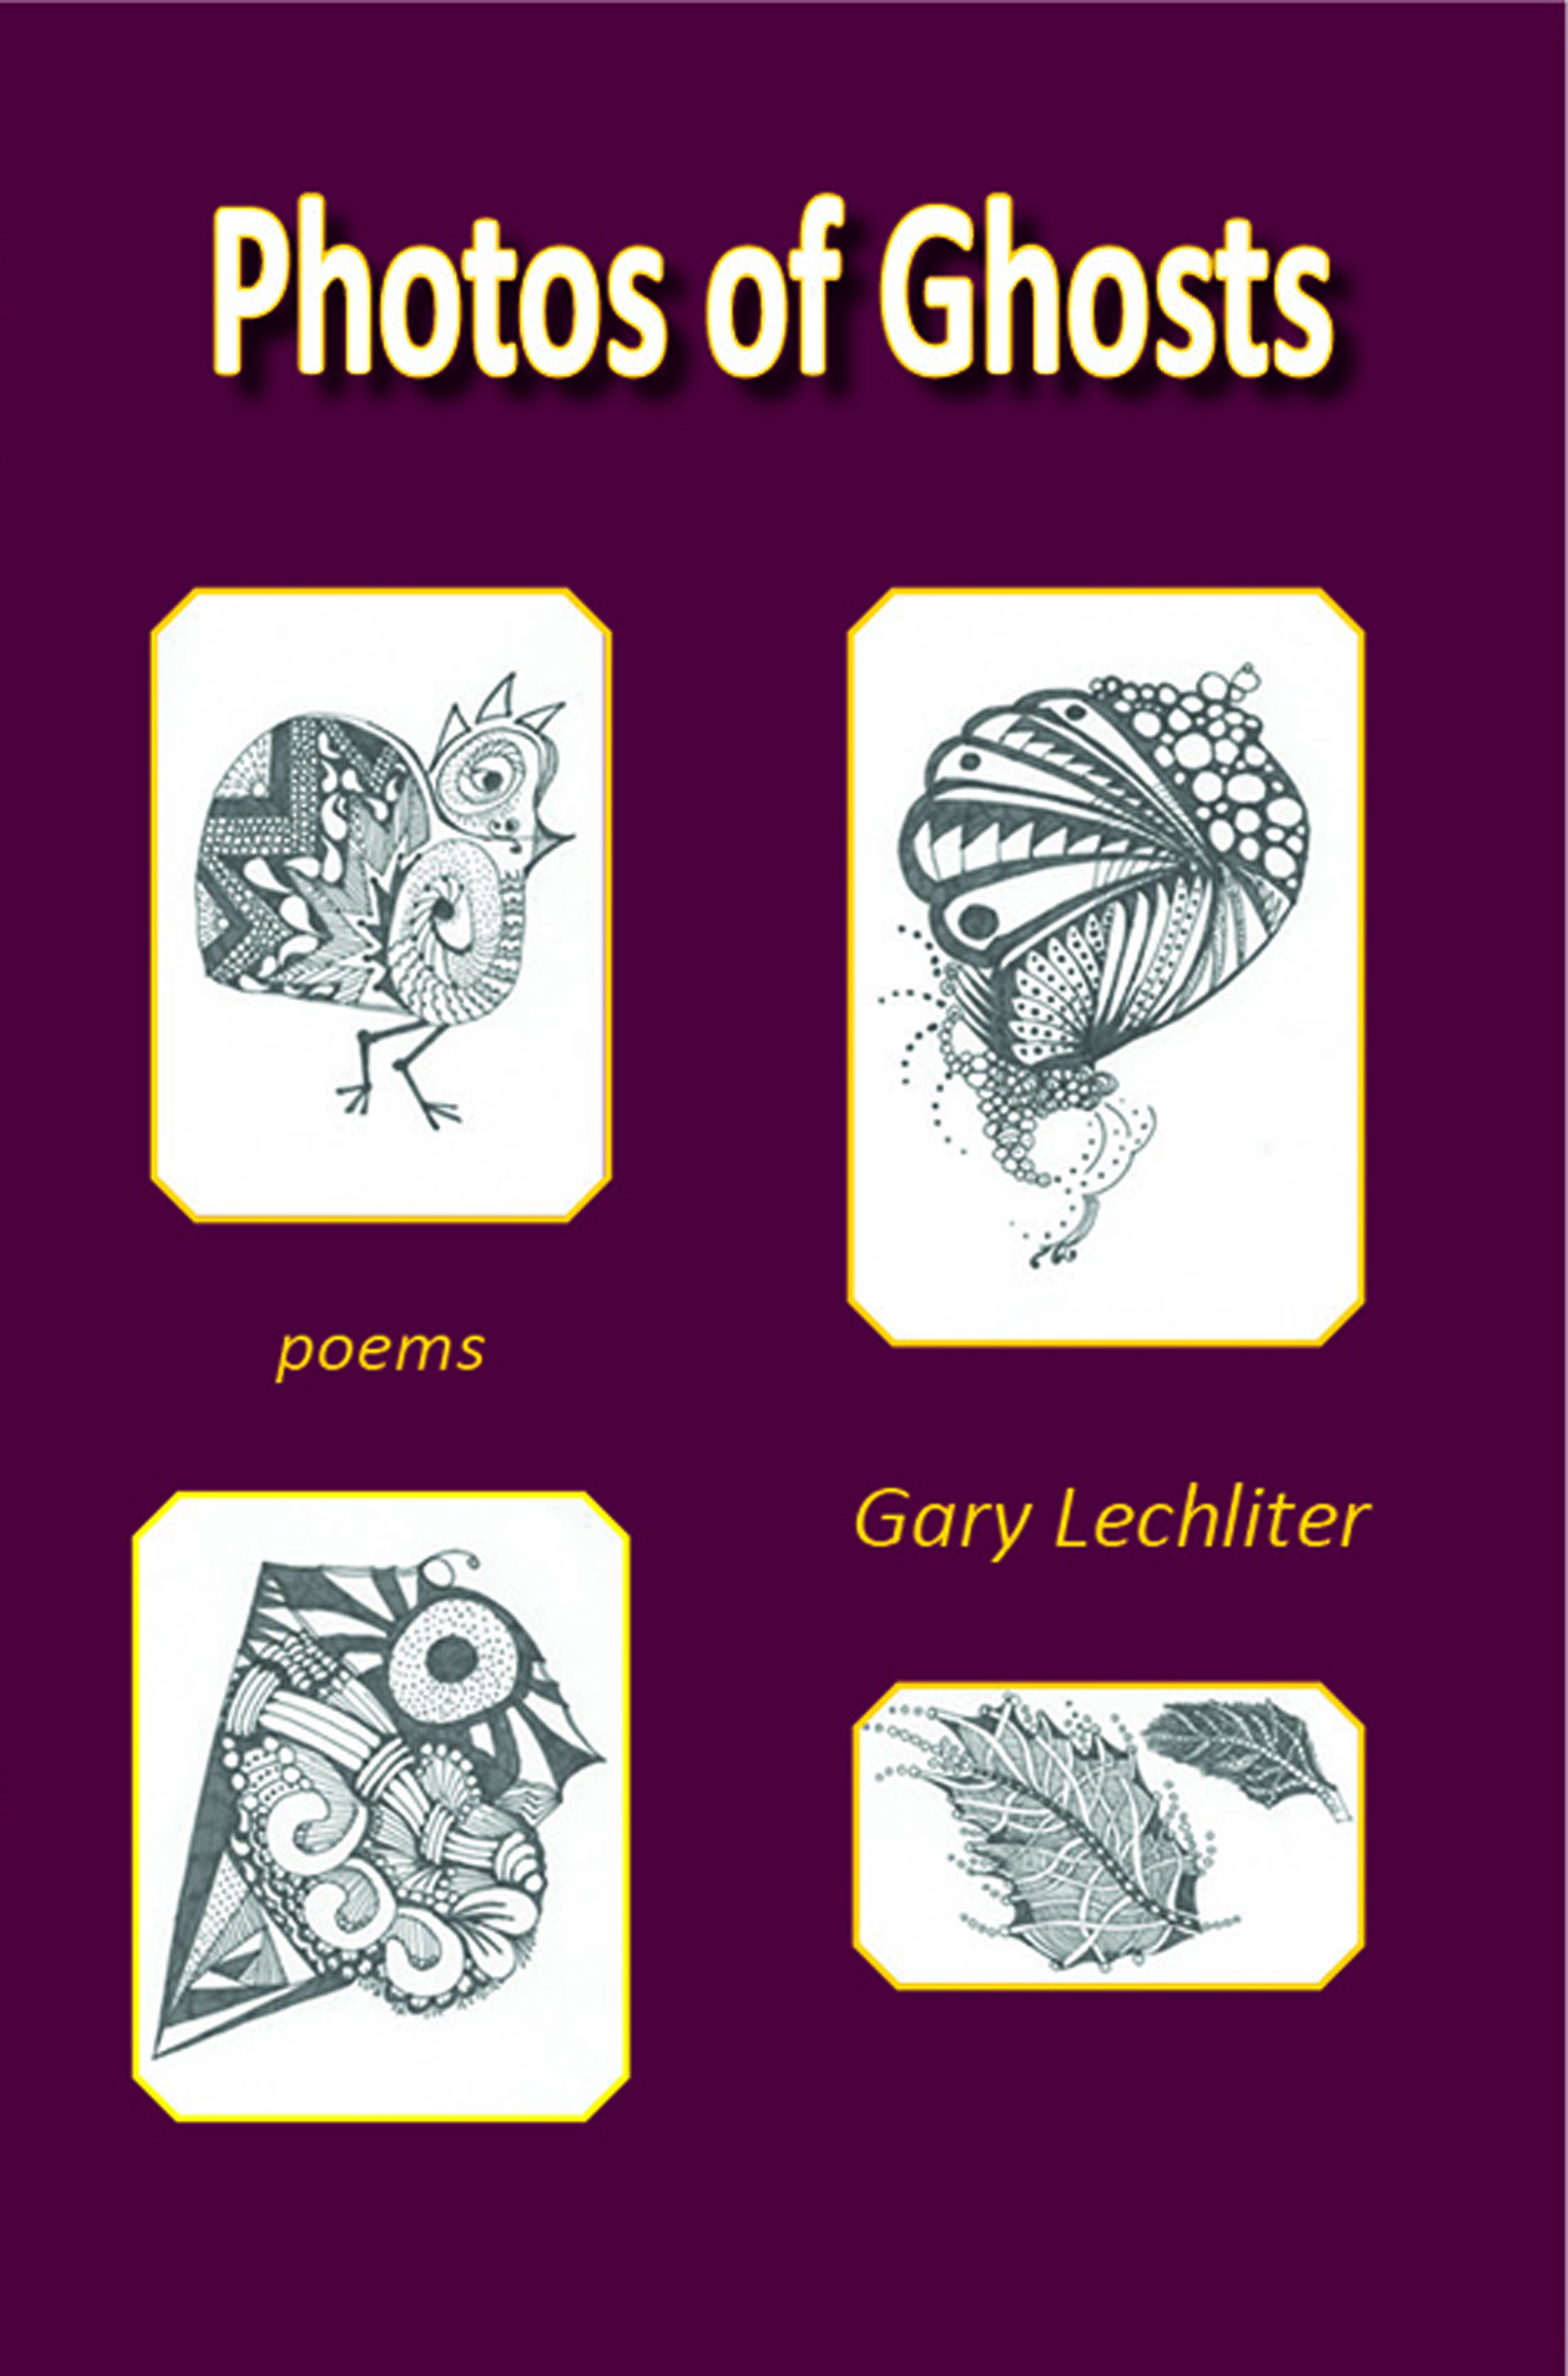 Gary lechliter, Photos of Ghosts front cover.jpg